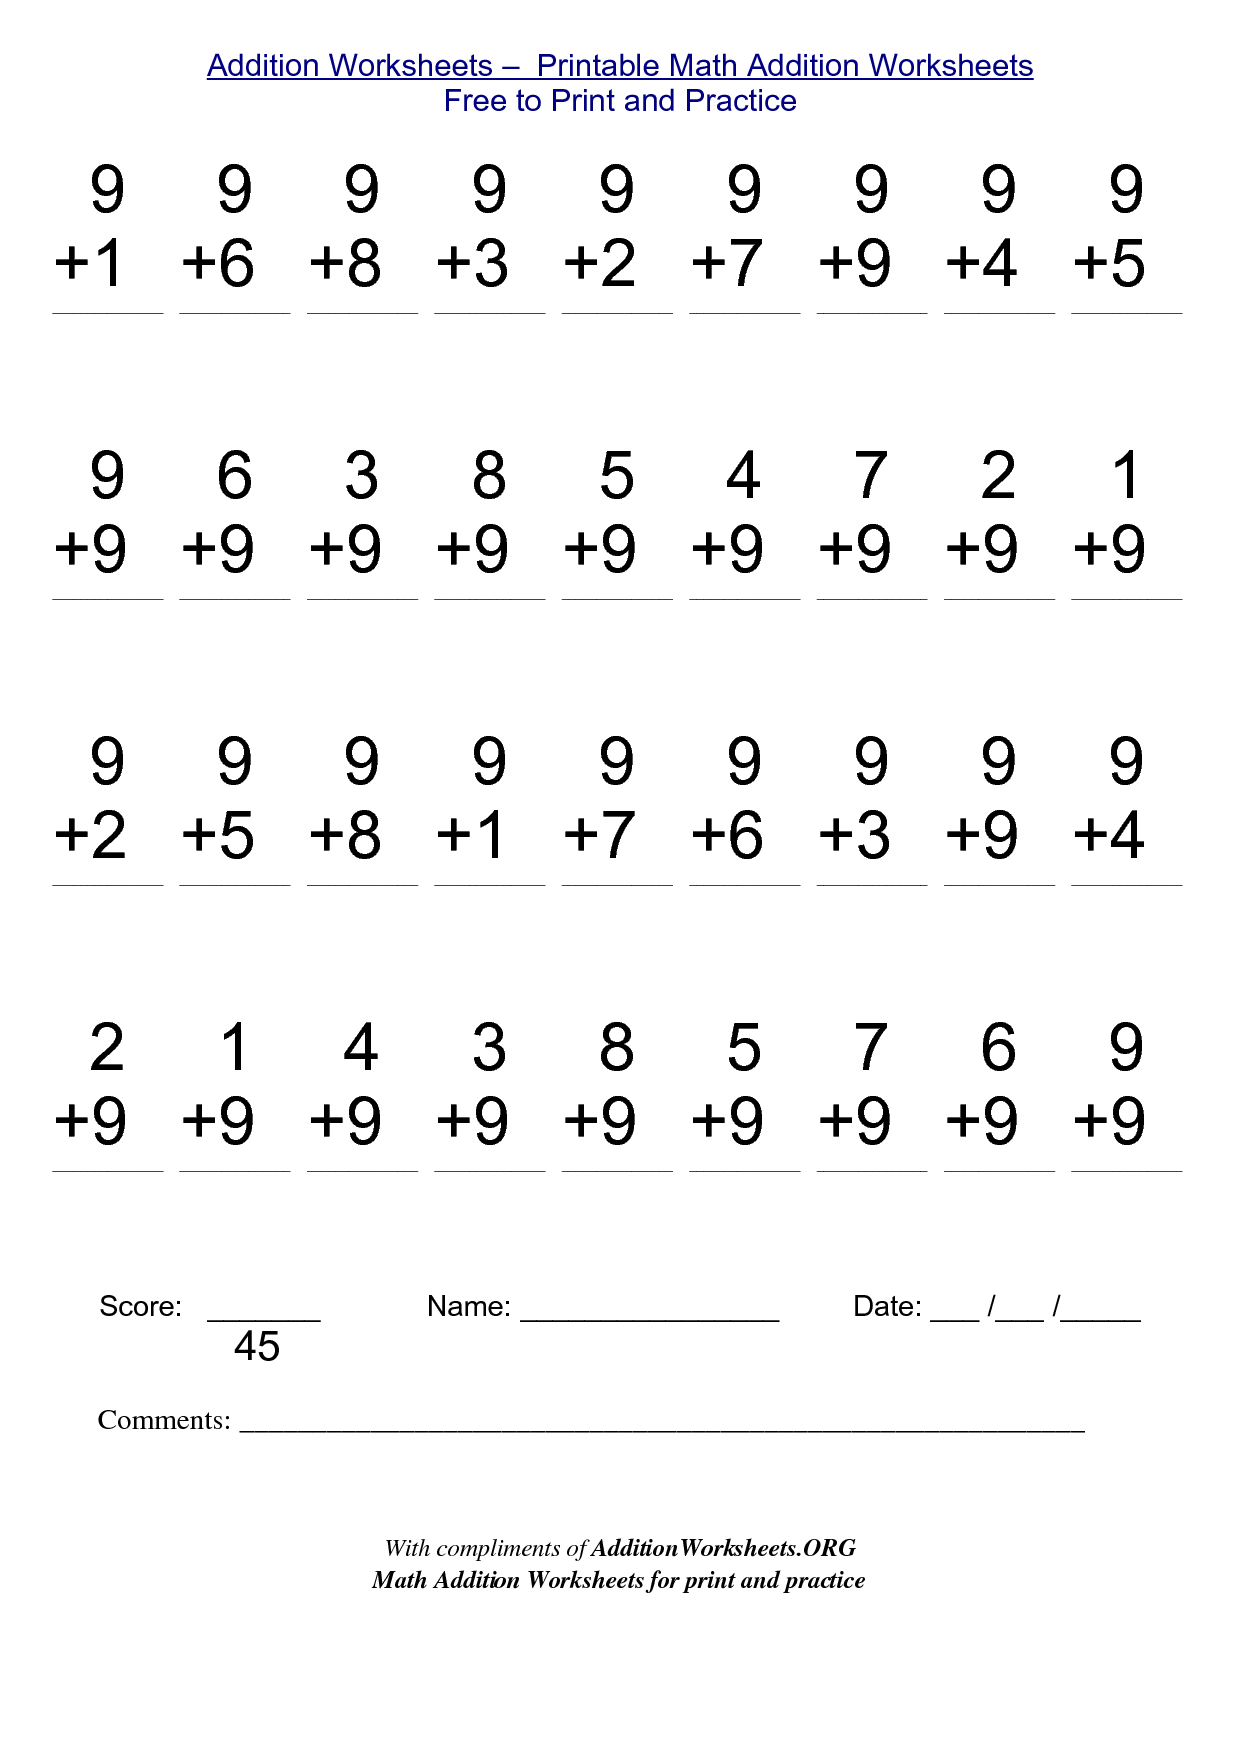 worksheet Printable Kindergarten Math Worksheets mathgen software allows you to make custom math worksheets in addition printable free print